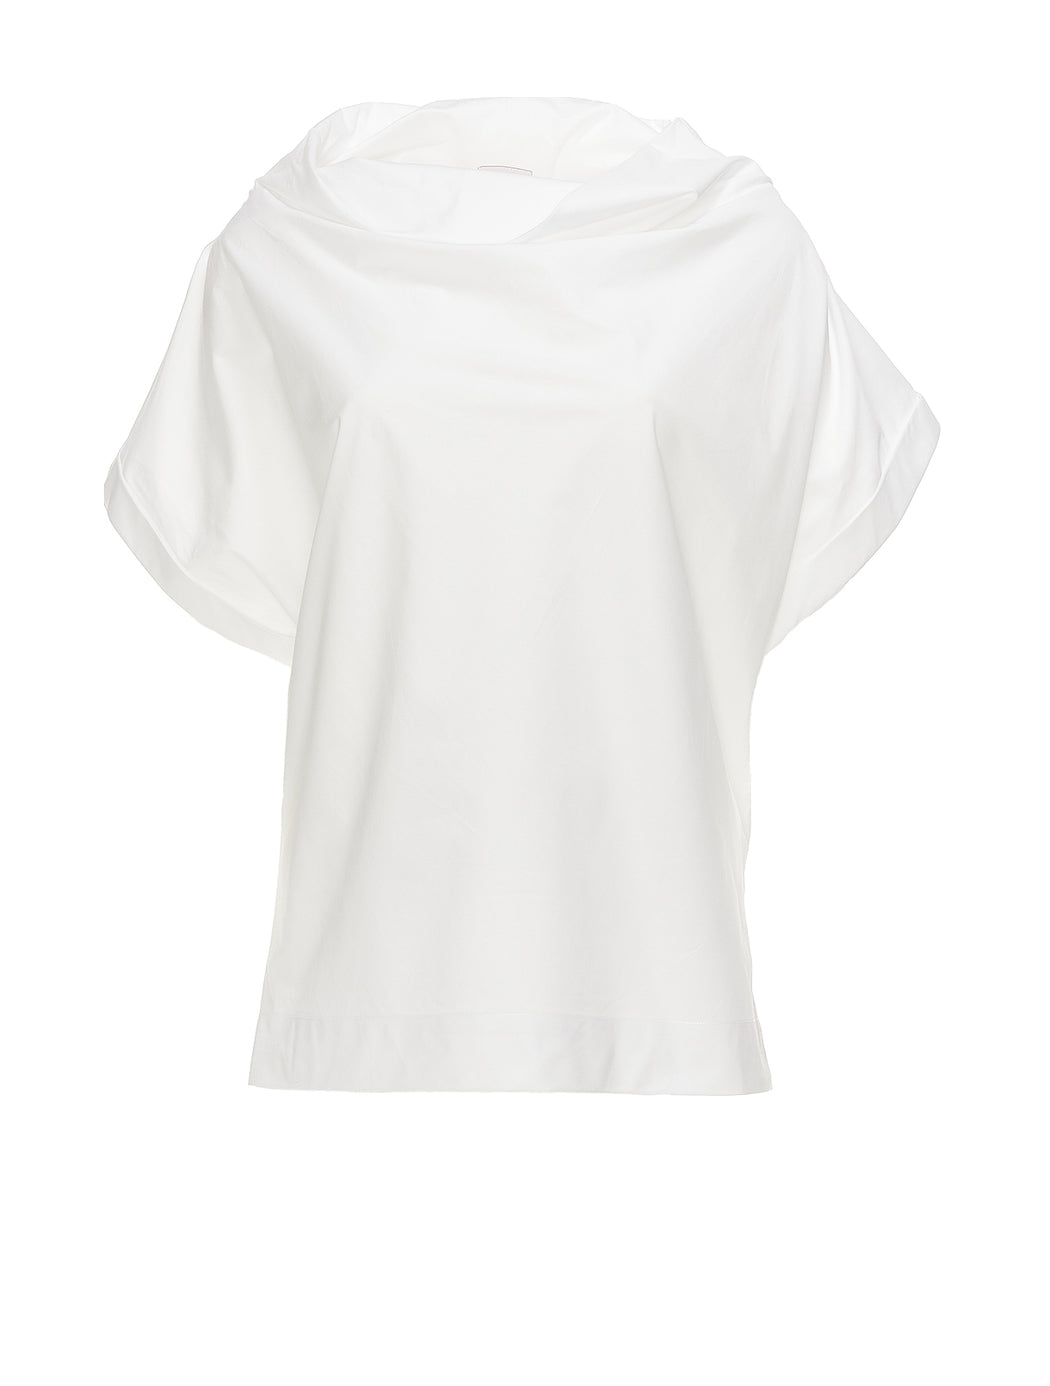 Drape Neck Shirt